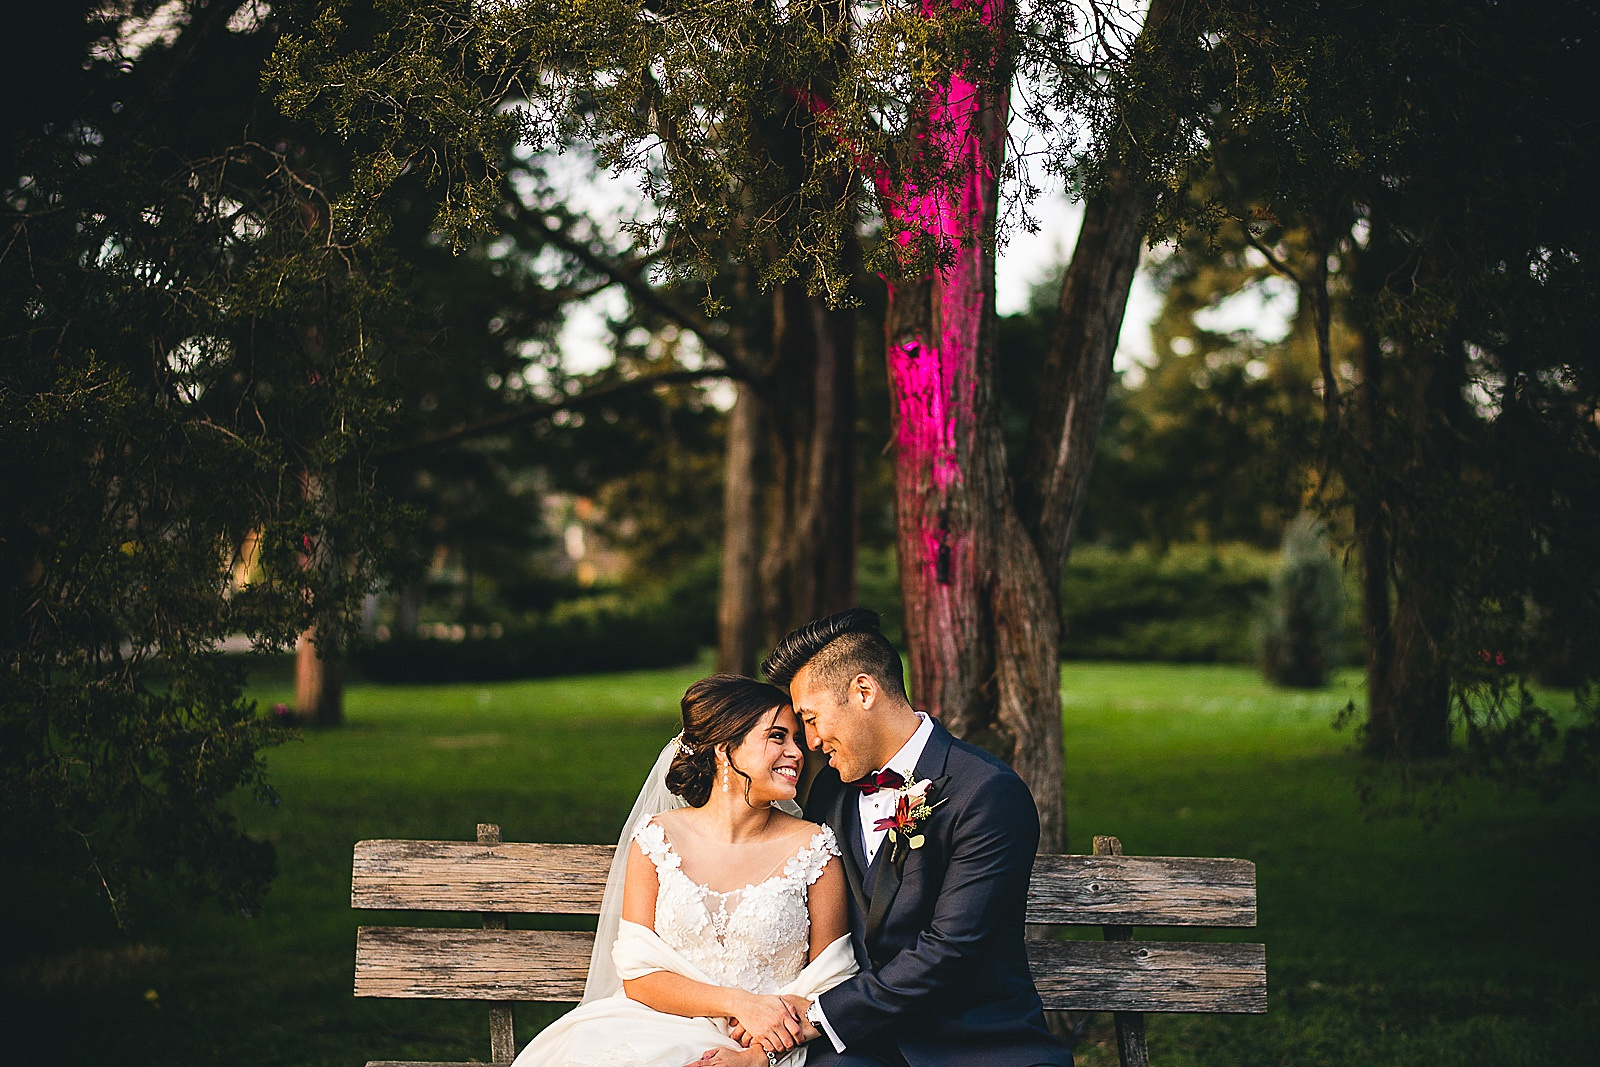 13 park wedding photography - Chicago Wedding Photography at Morton Arboretum // Alex + Tim